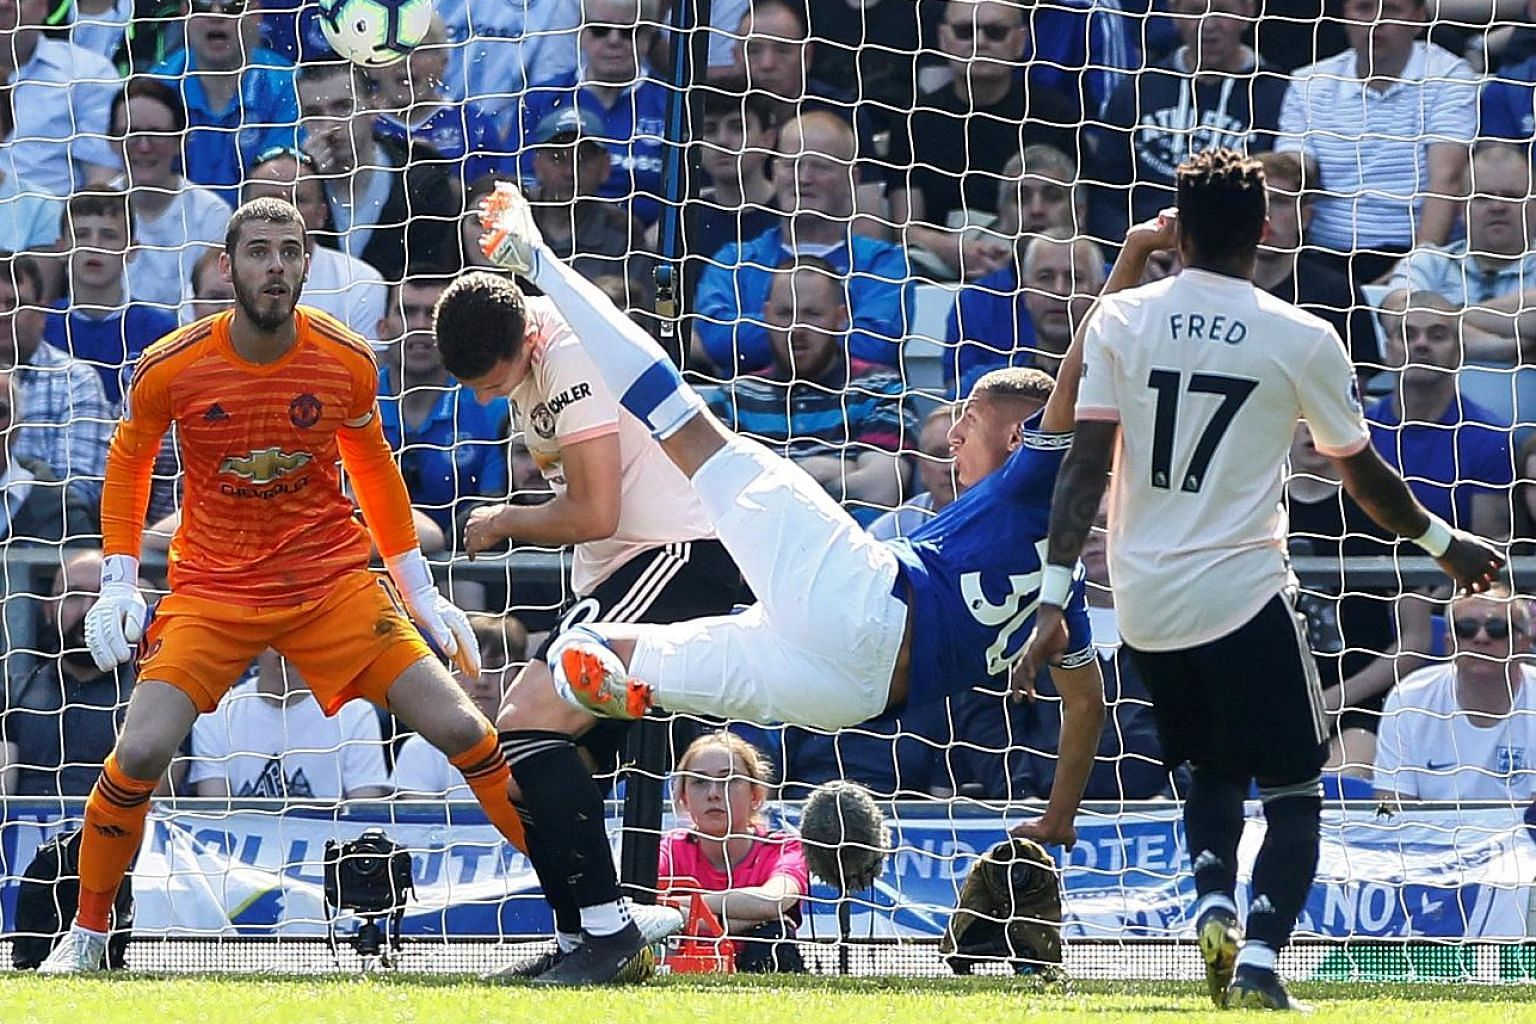 Brazilian Richarlison firing Everton ahead in the 13th minute with an acrobatic high volley at Goodison Park yesterday to start the ball rolling for the Toffees, who recorded their biggest win over United since October 1984.